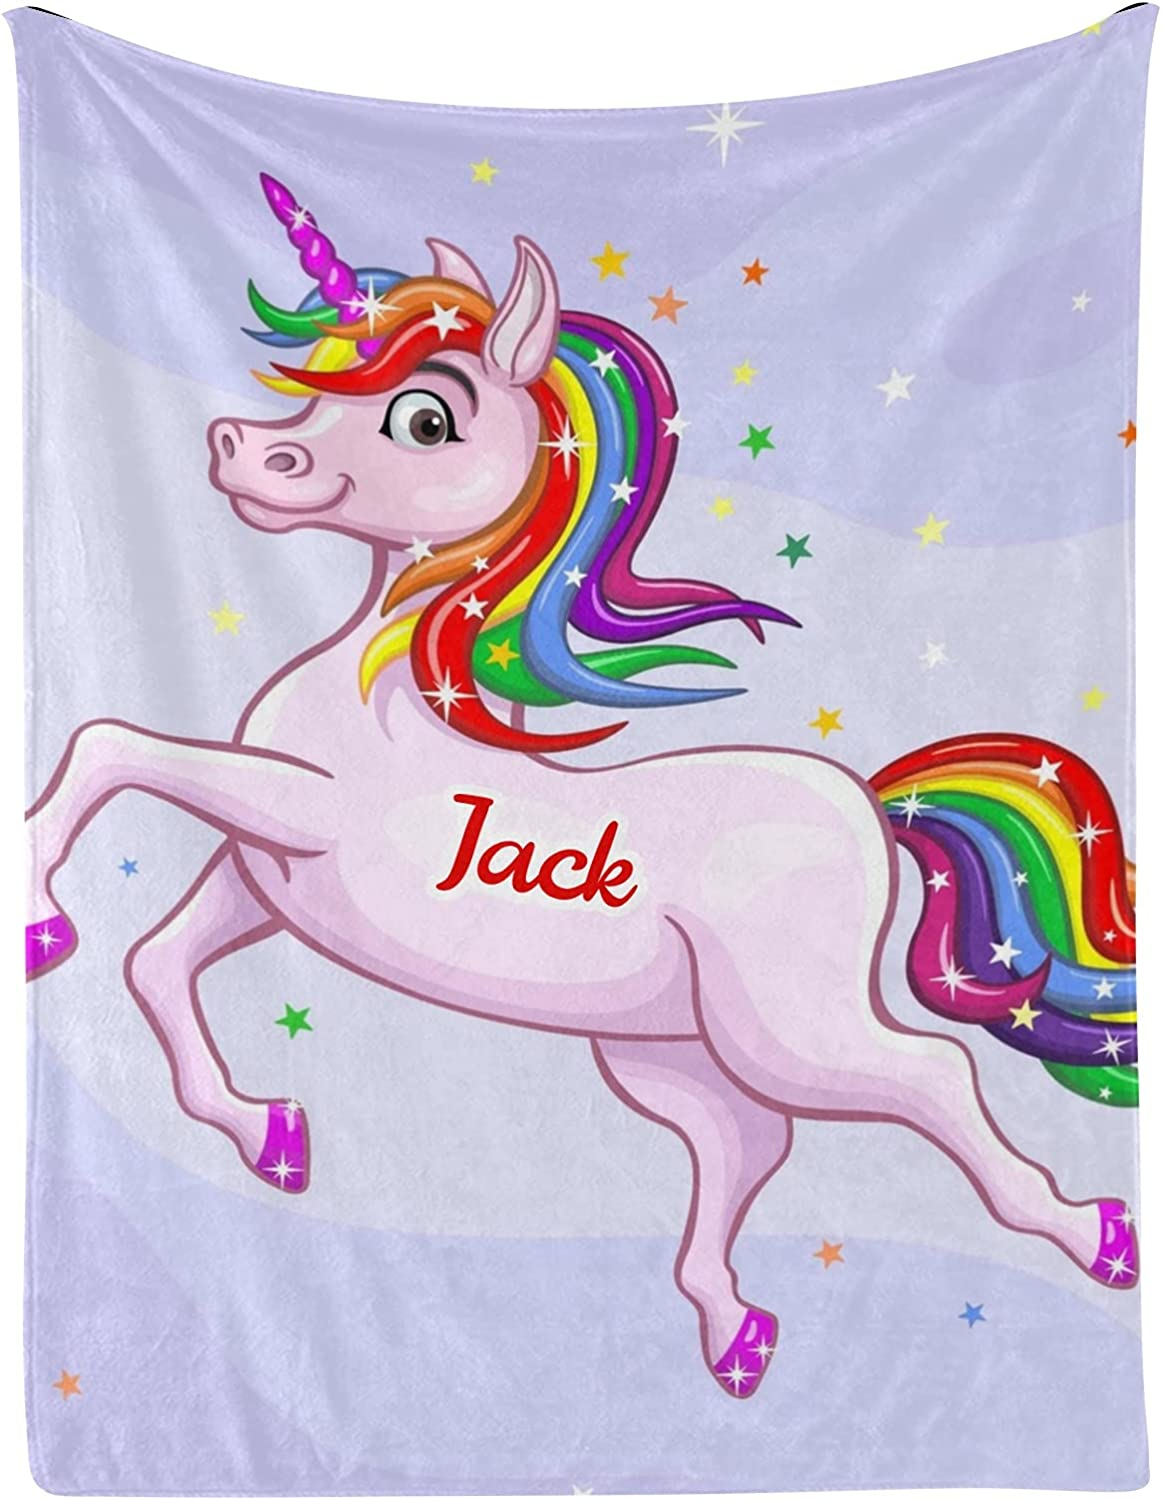 Colorful Unicorn Star Personalized Max 59% OFF Baby with Blankets 30x40 Name Ranking TOP6